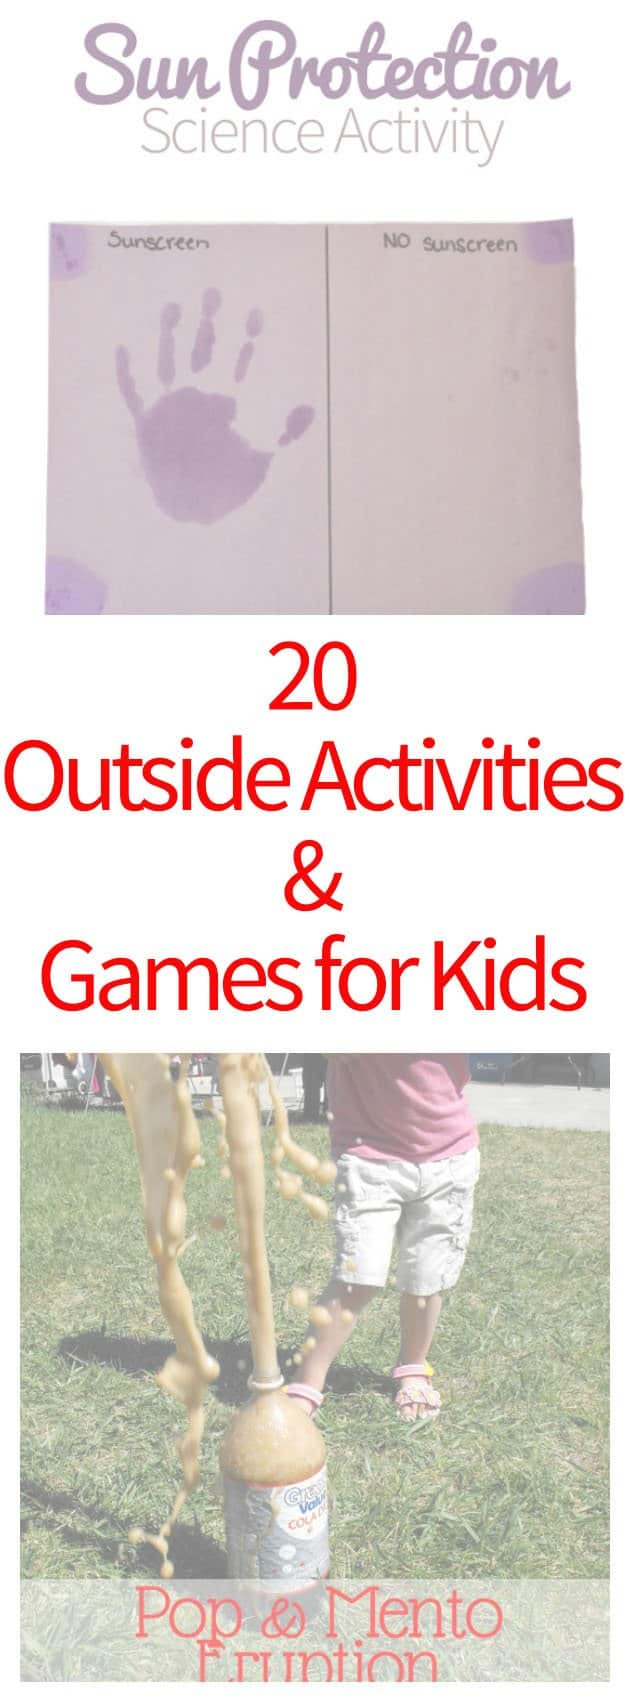 20 Outside Activities & Games for Kids